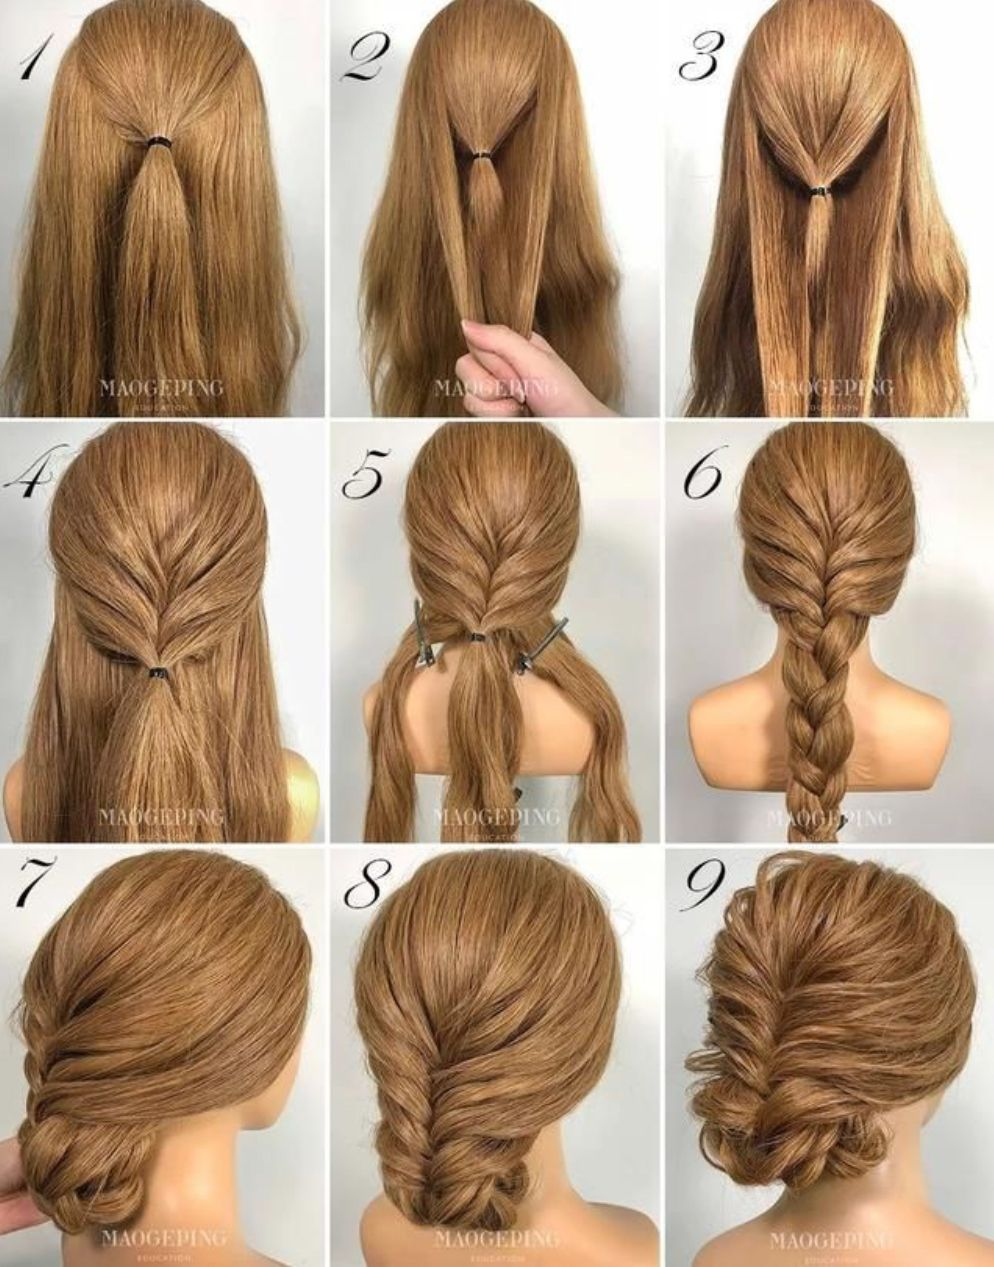 My hair for wedding  Night hairstyles, Evening hairstyles, Long